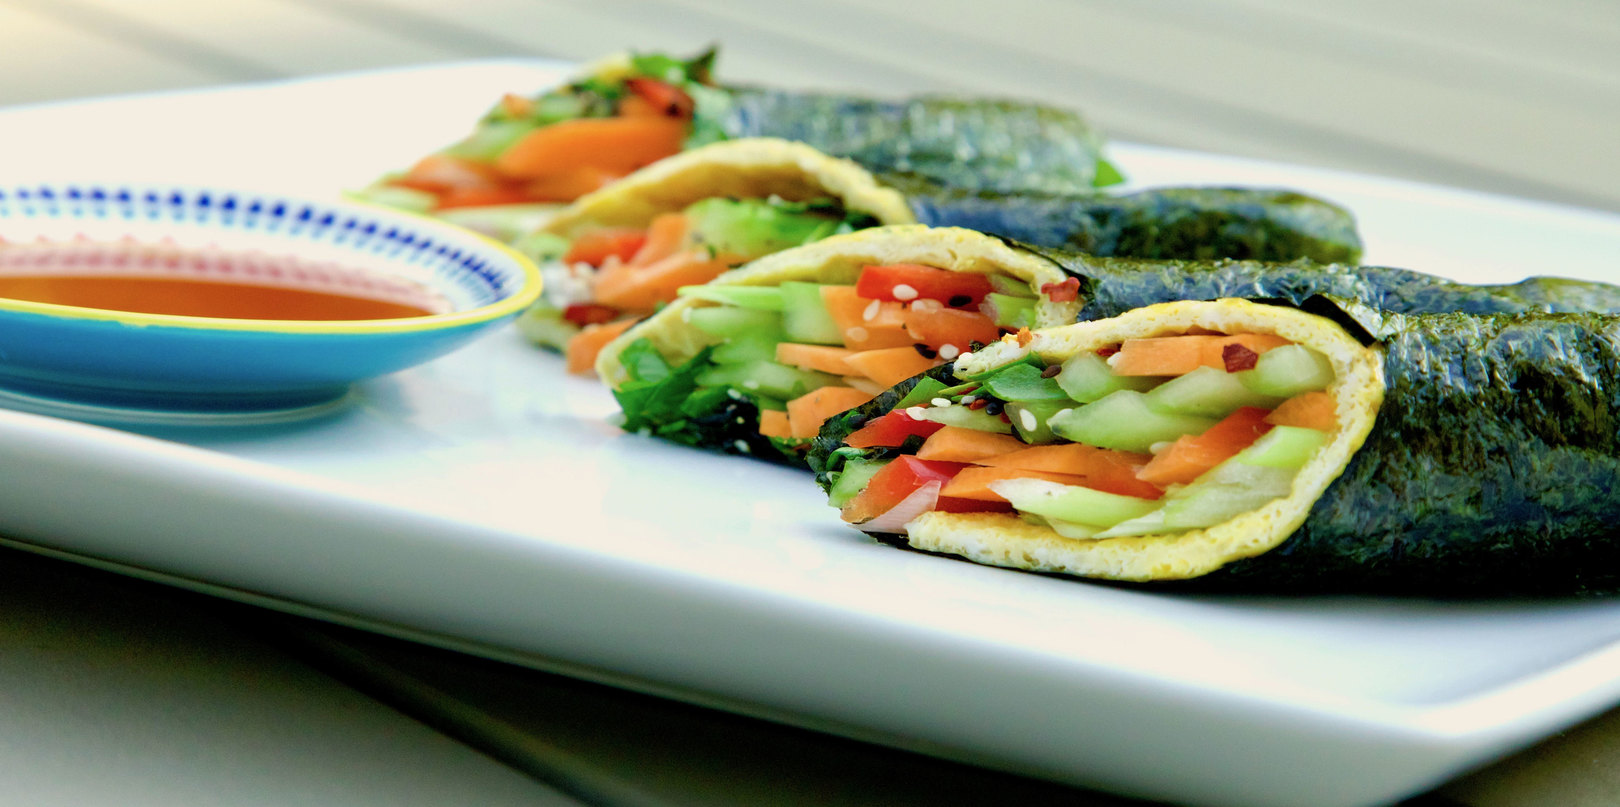 Egg and vegetable sushi